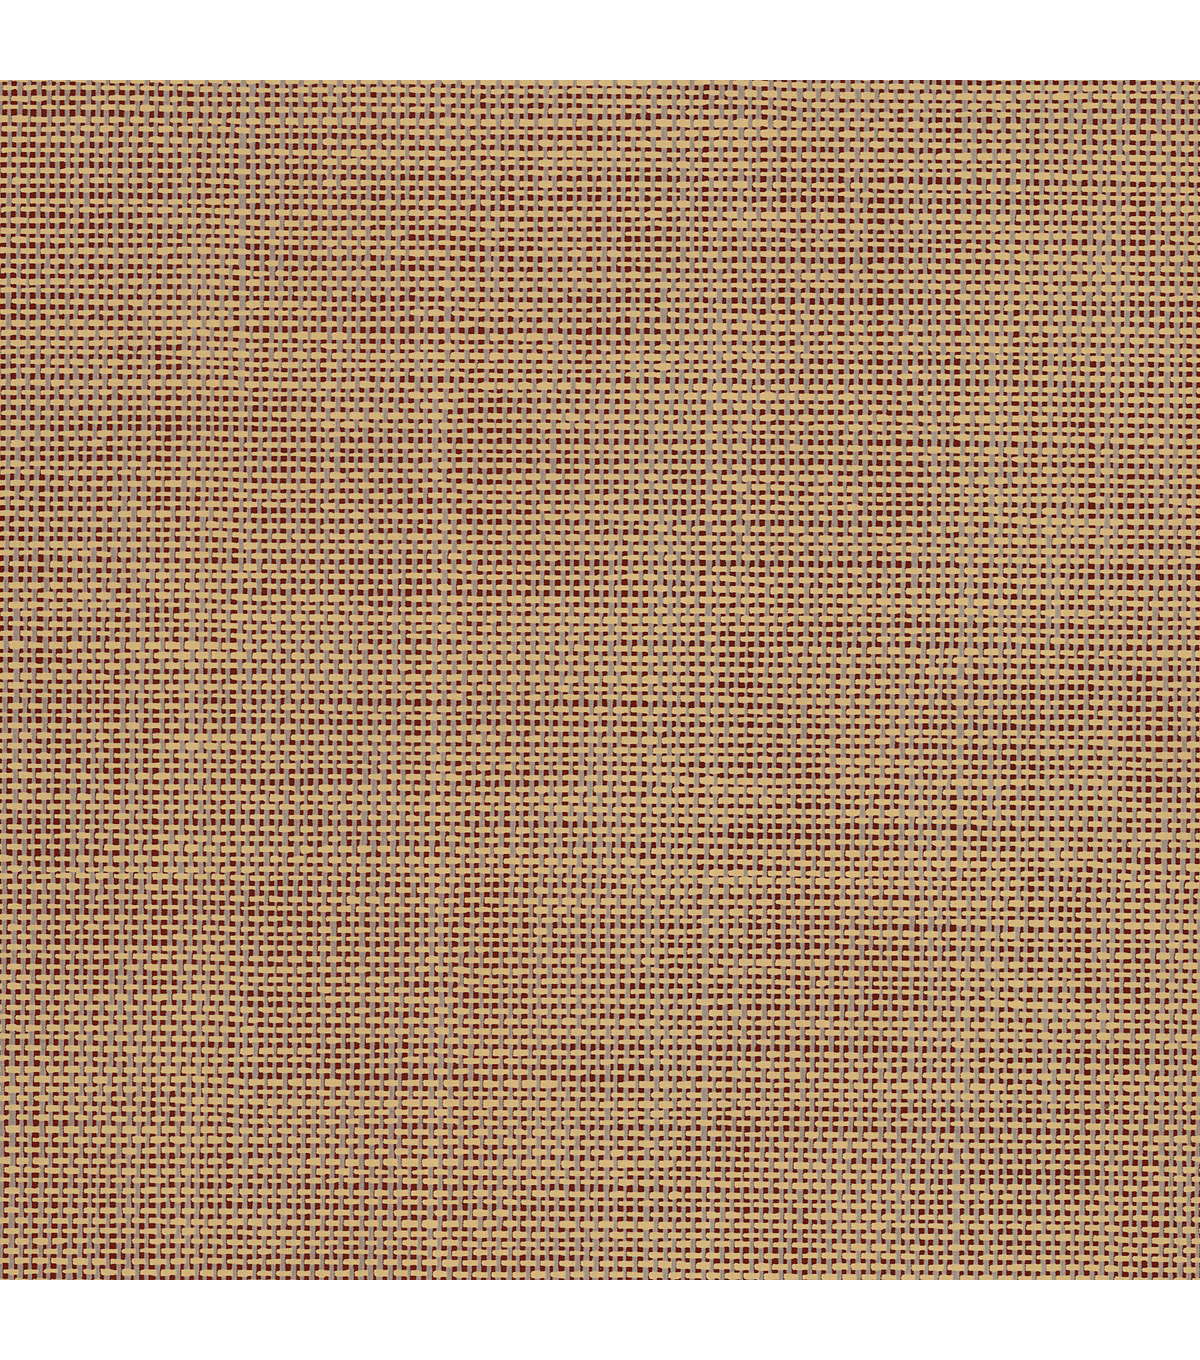 Isaac Brick Woven Texture Wallpaper Sample